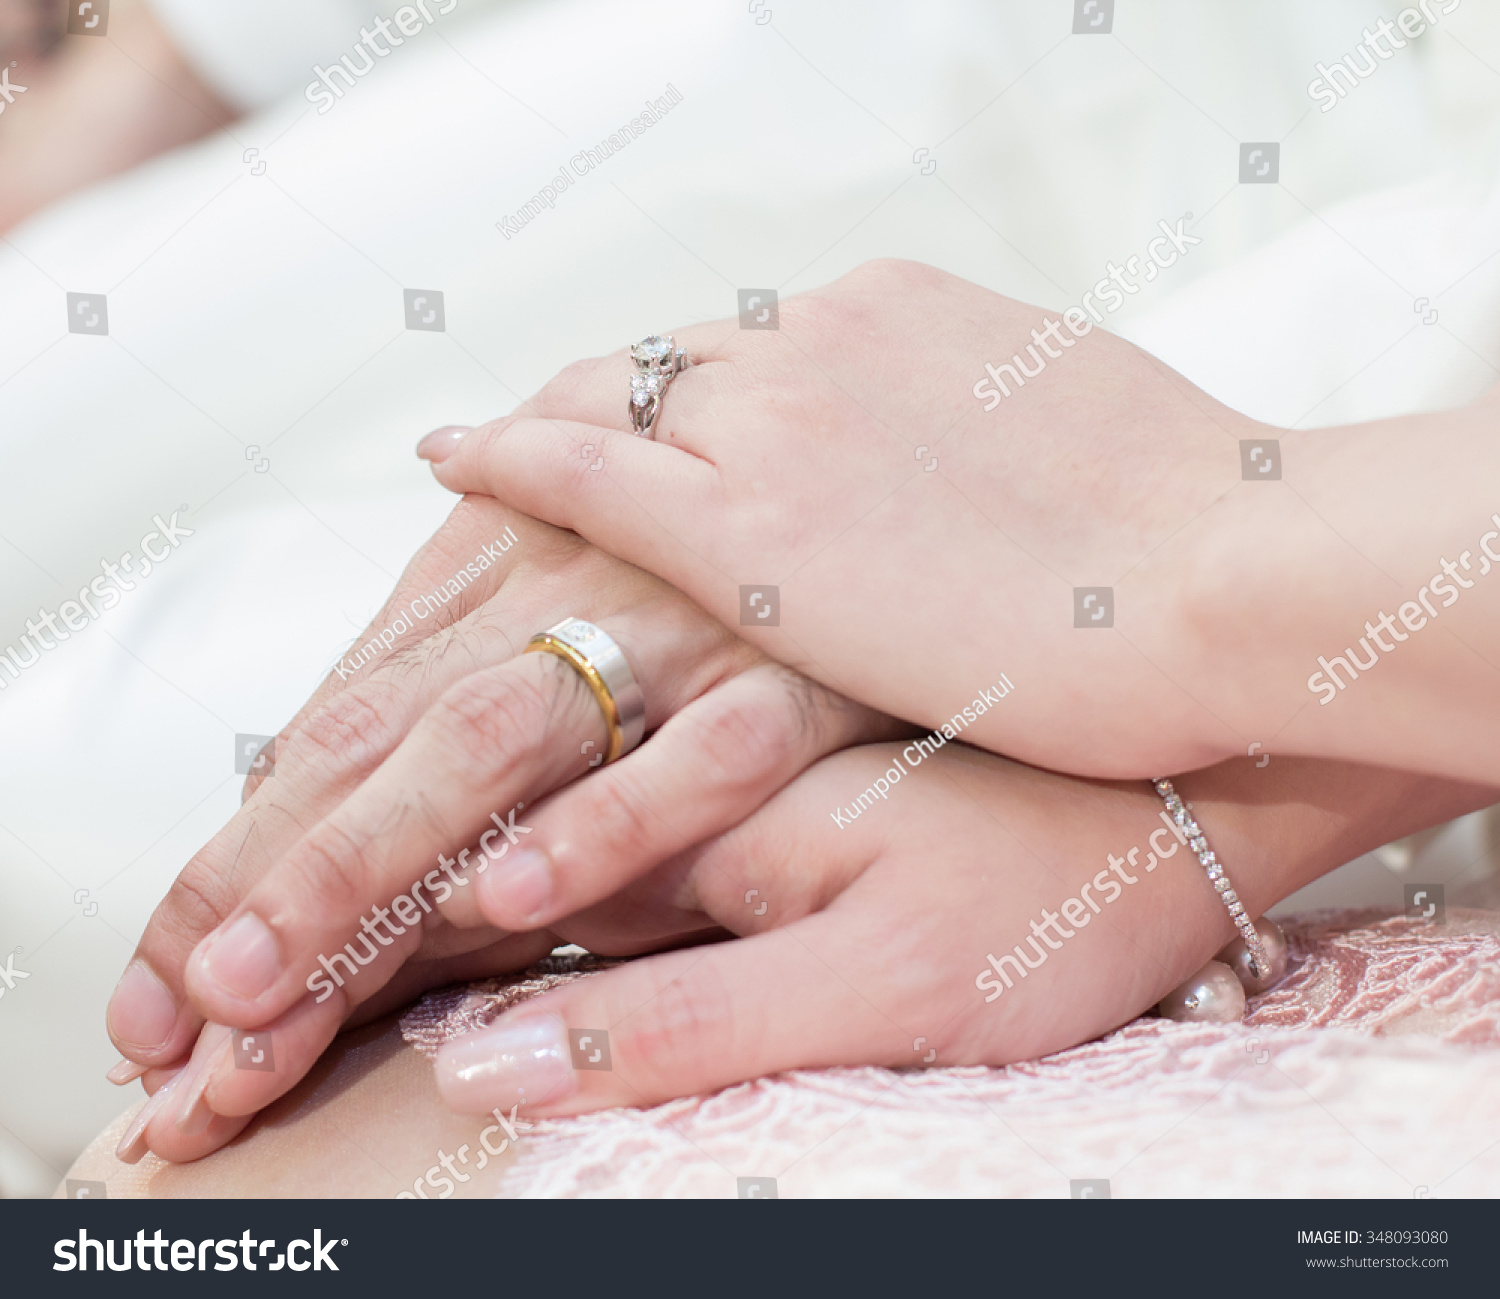 Betrothal Wedding Rings Thailand Wedding Stock Photo (100% Legal ...